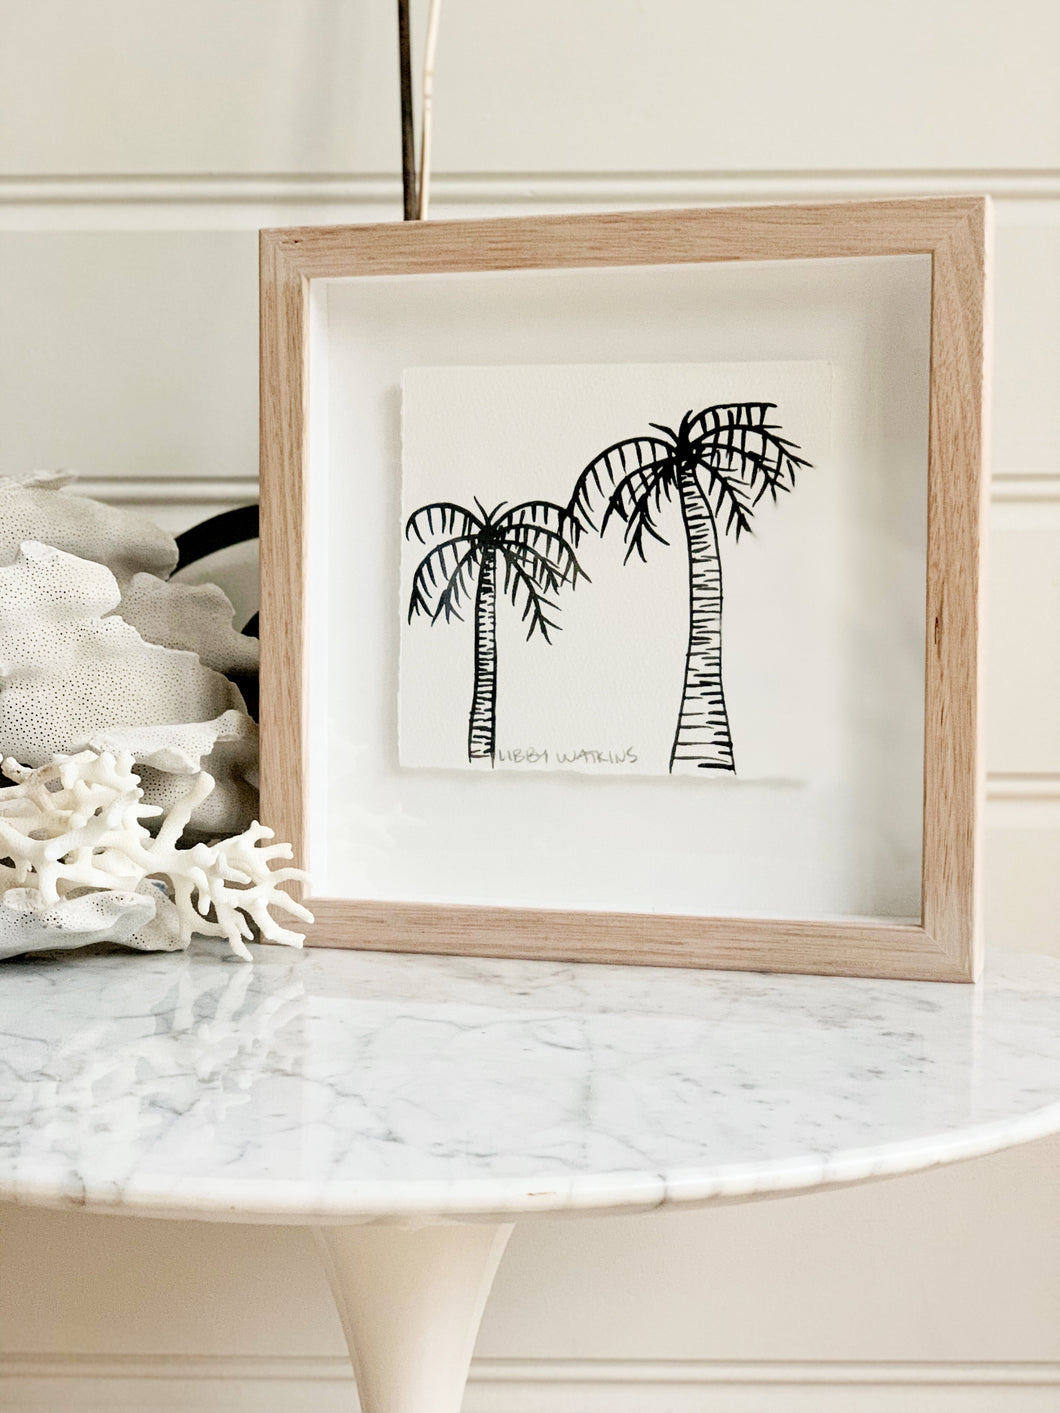 Signature Libby Watkins | Mini Ink Palm | 91802 | Made to order with artist Libby Watkins